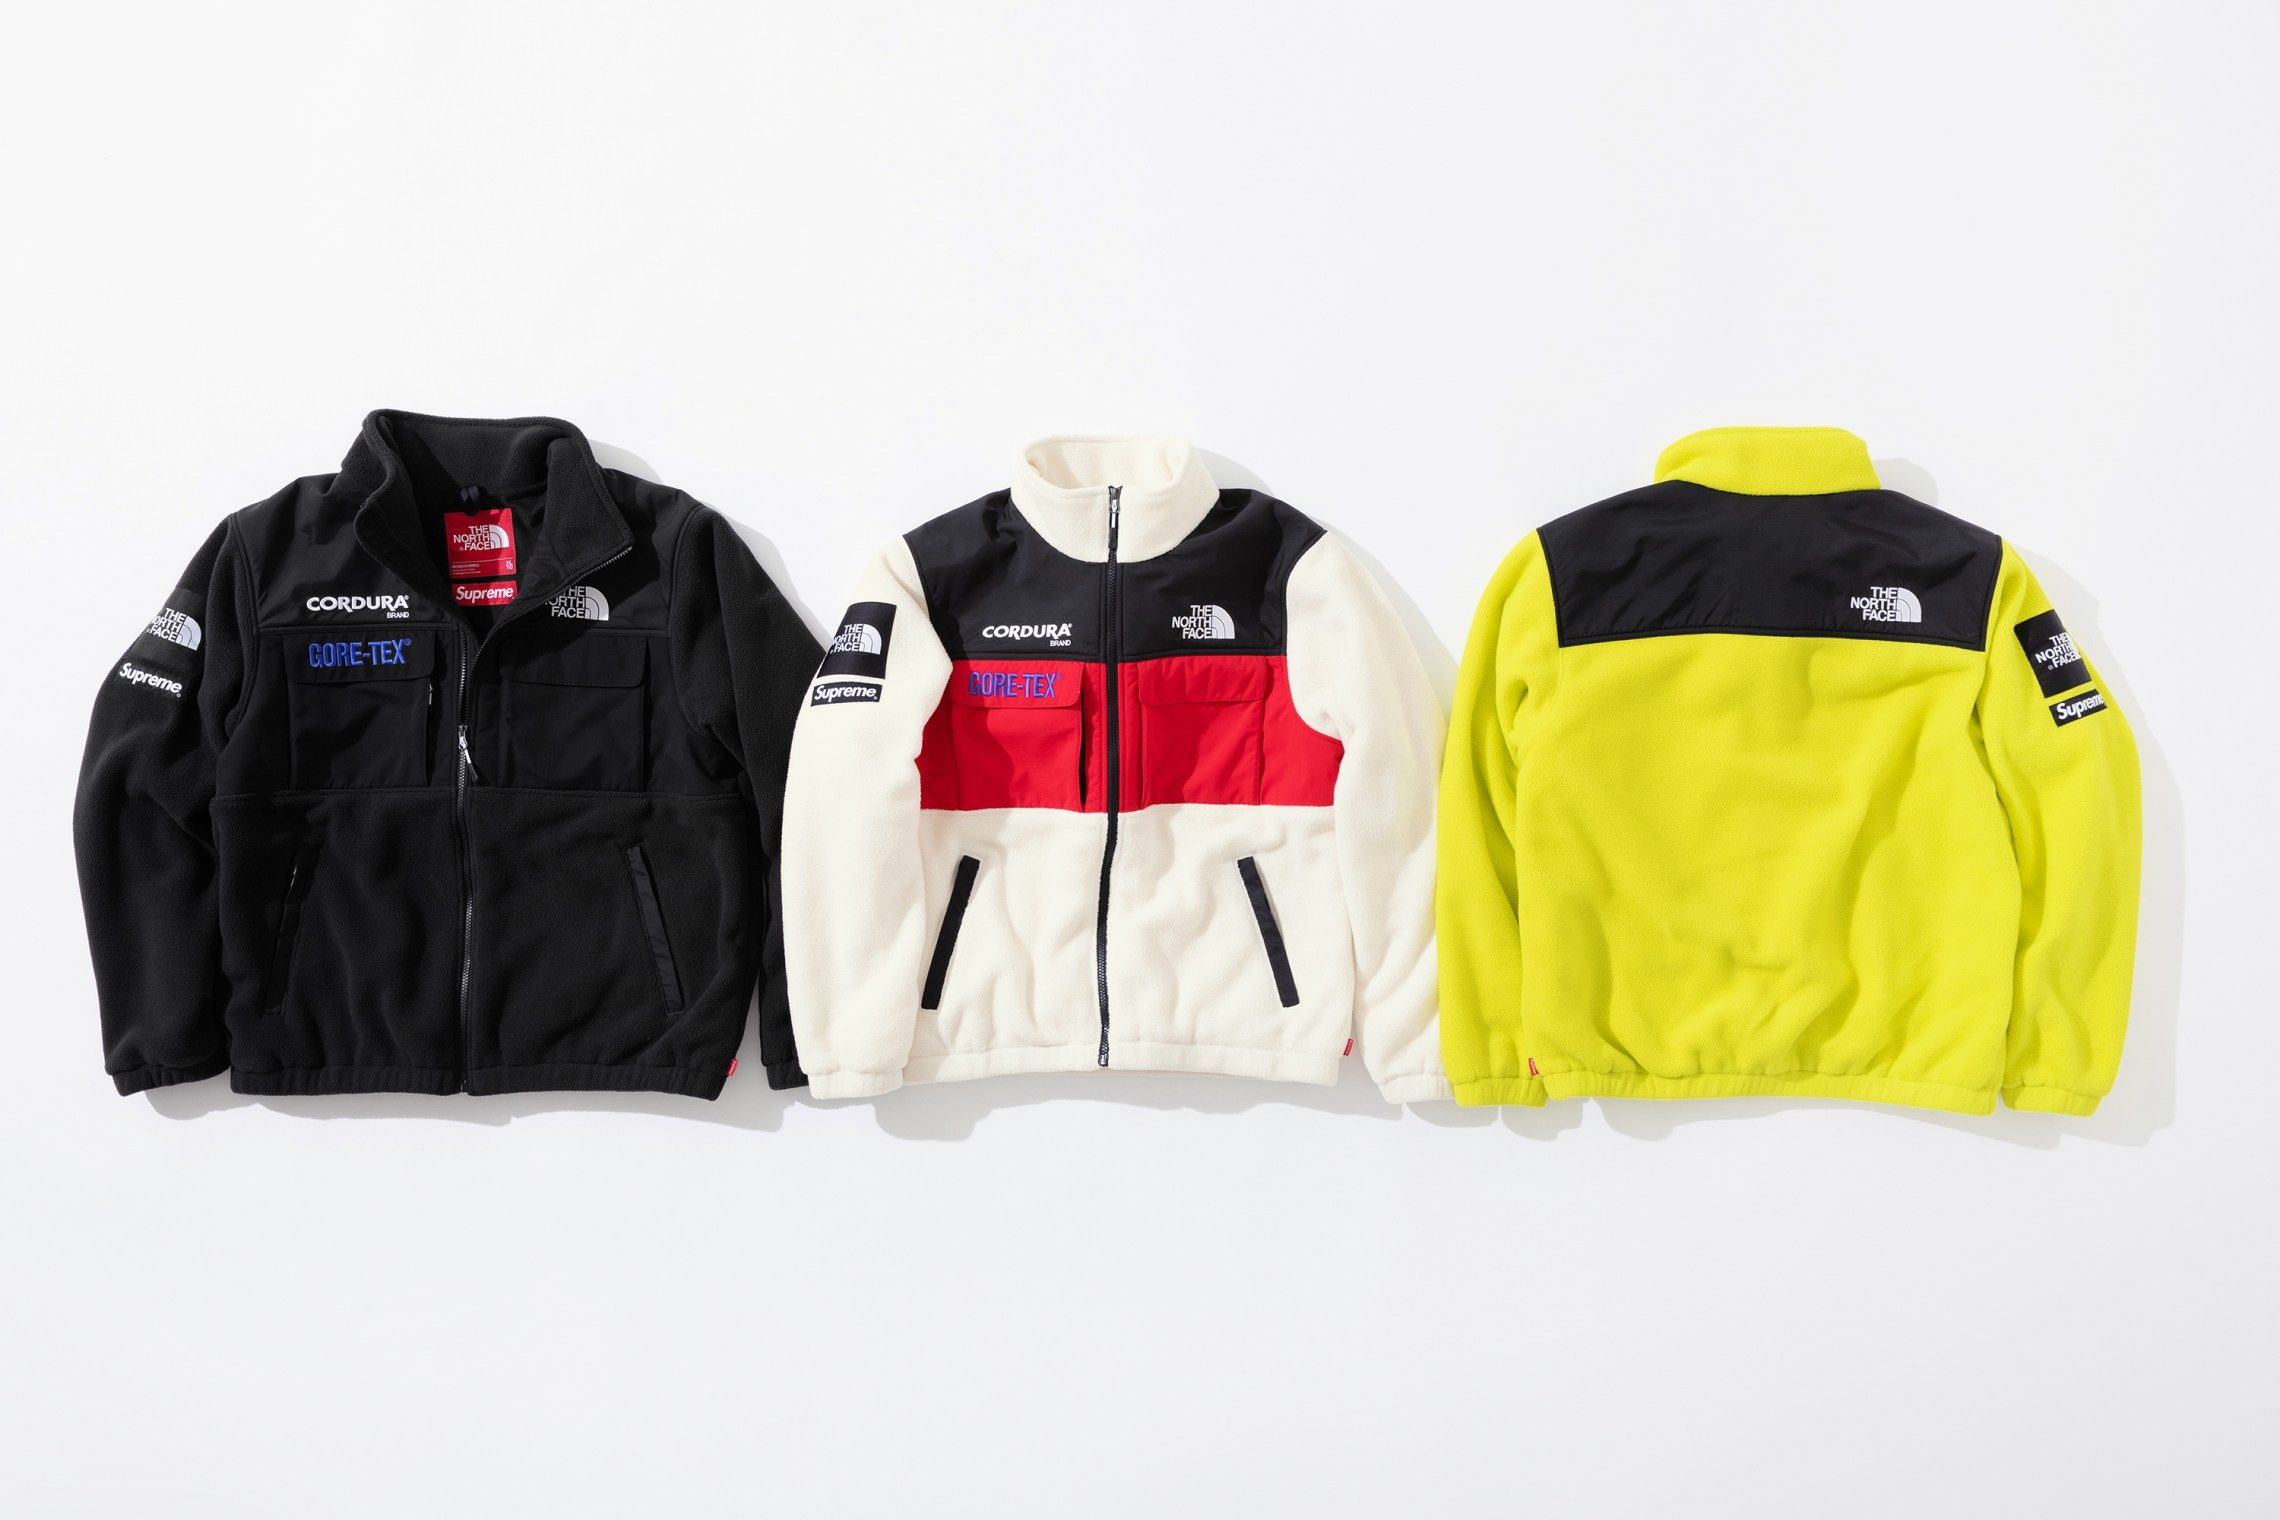 Supreme X The North Face Expedition Fleece Performance Outfit Outerwear Jackets Outdoor Jacket